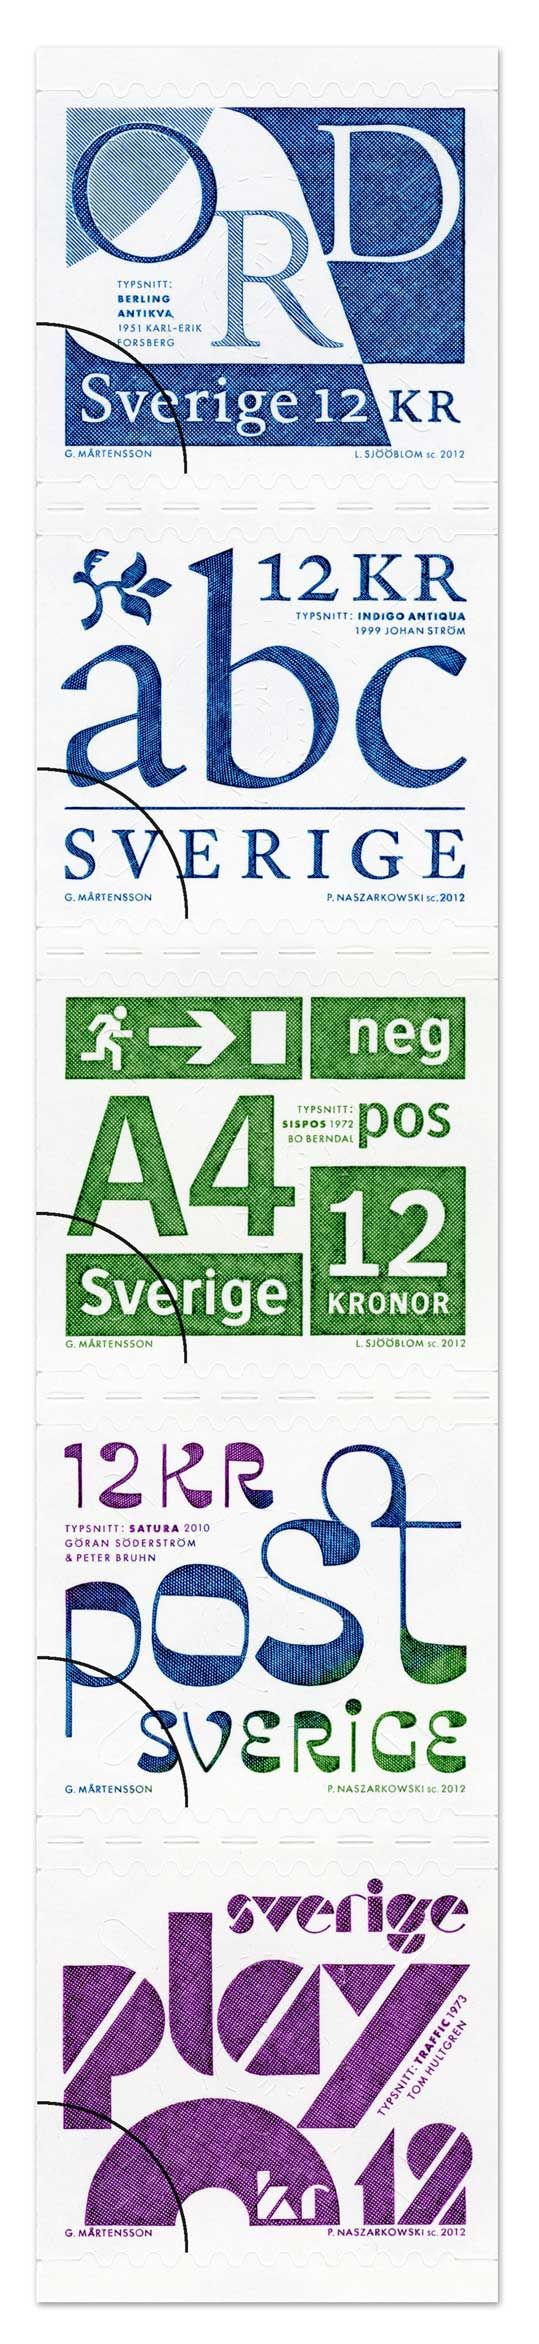 Swedish stamps featuring five Swedish typefaces, released 20120510.